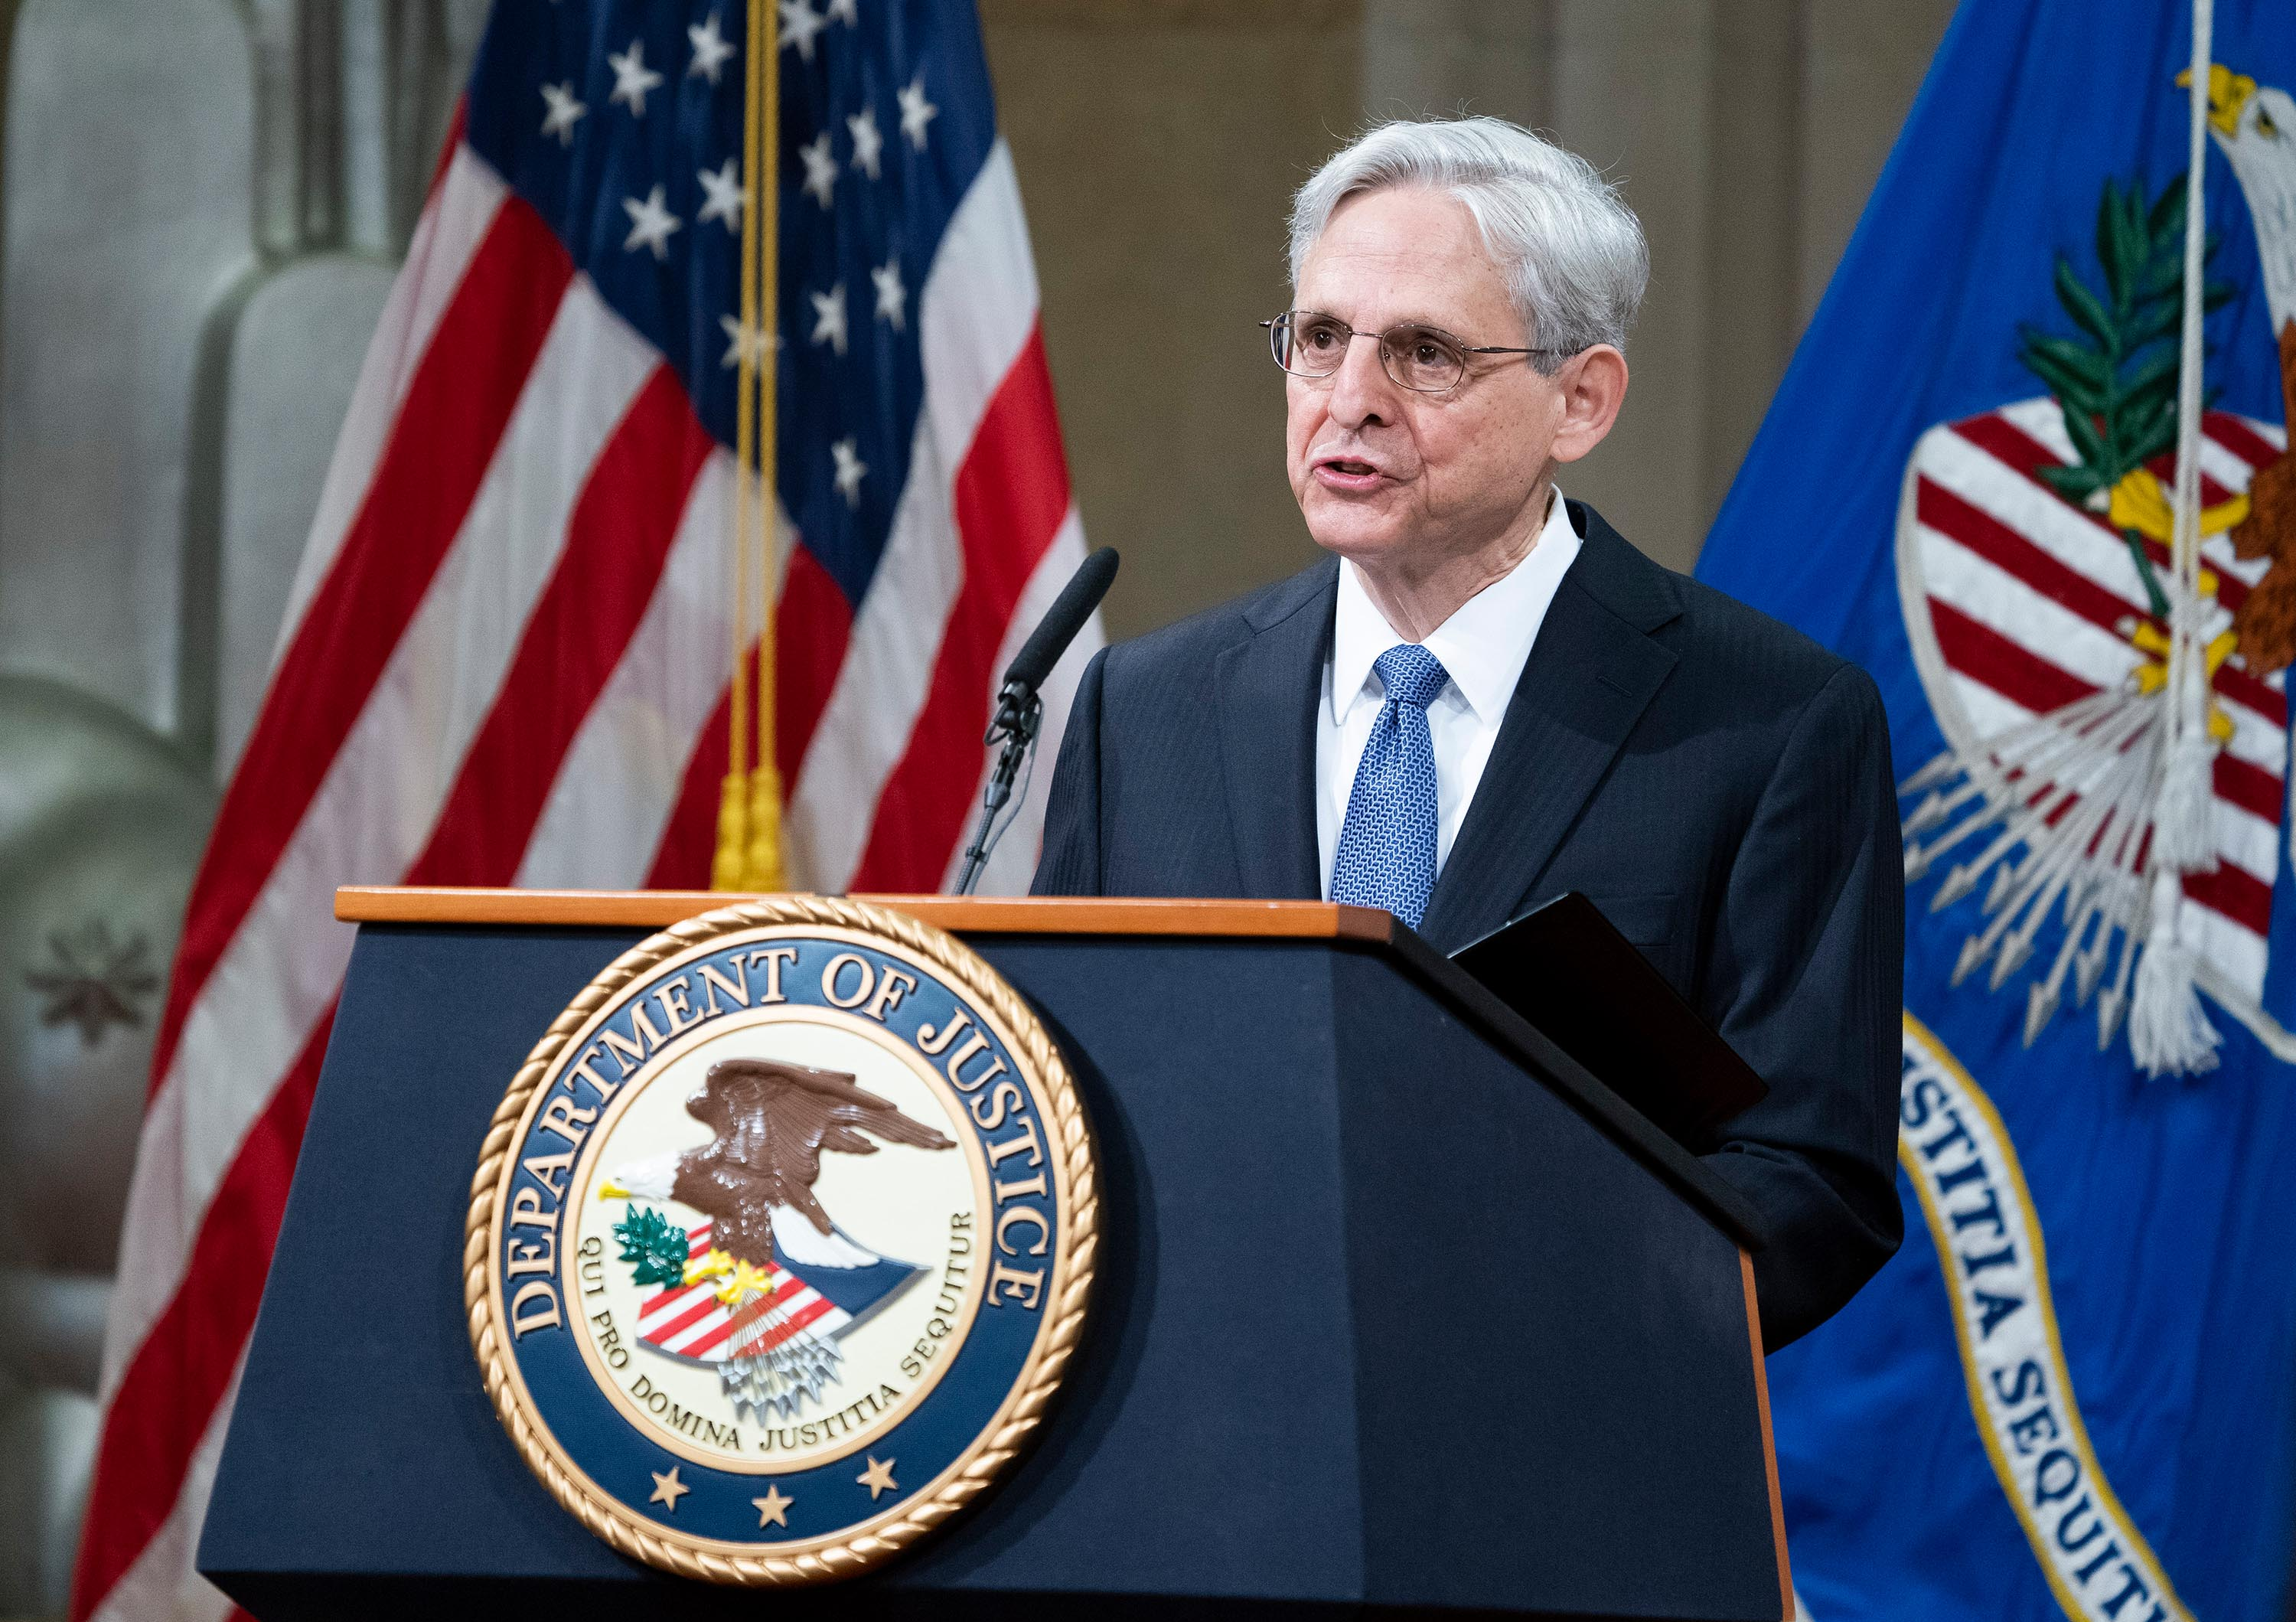 Attorney General Garland promises to prioritize investigating police departments that commit civil rights violations